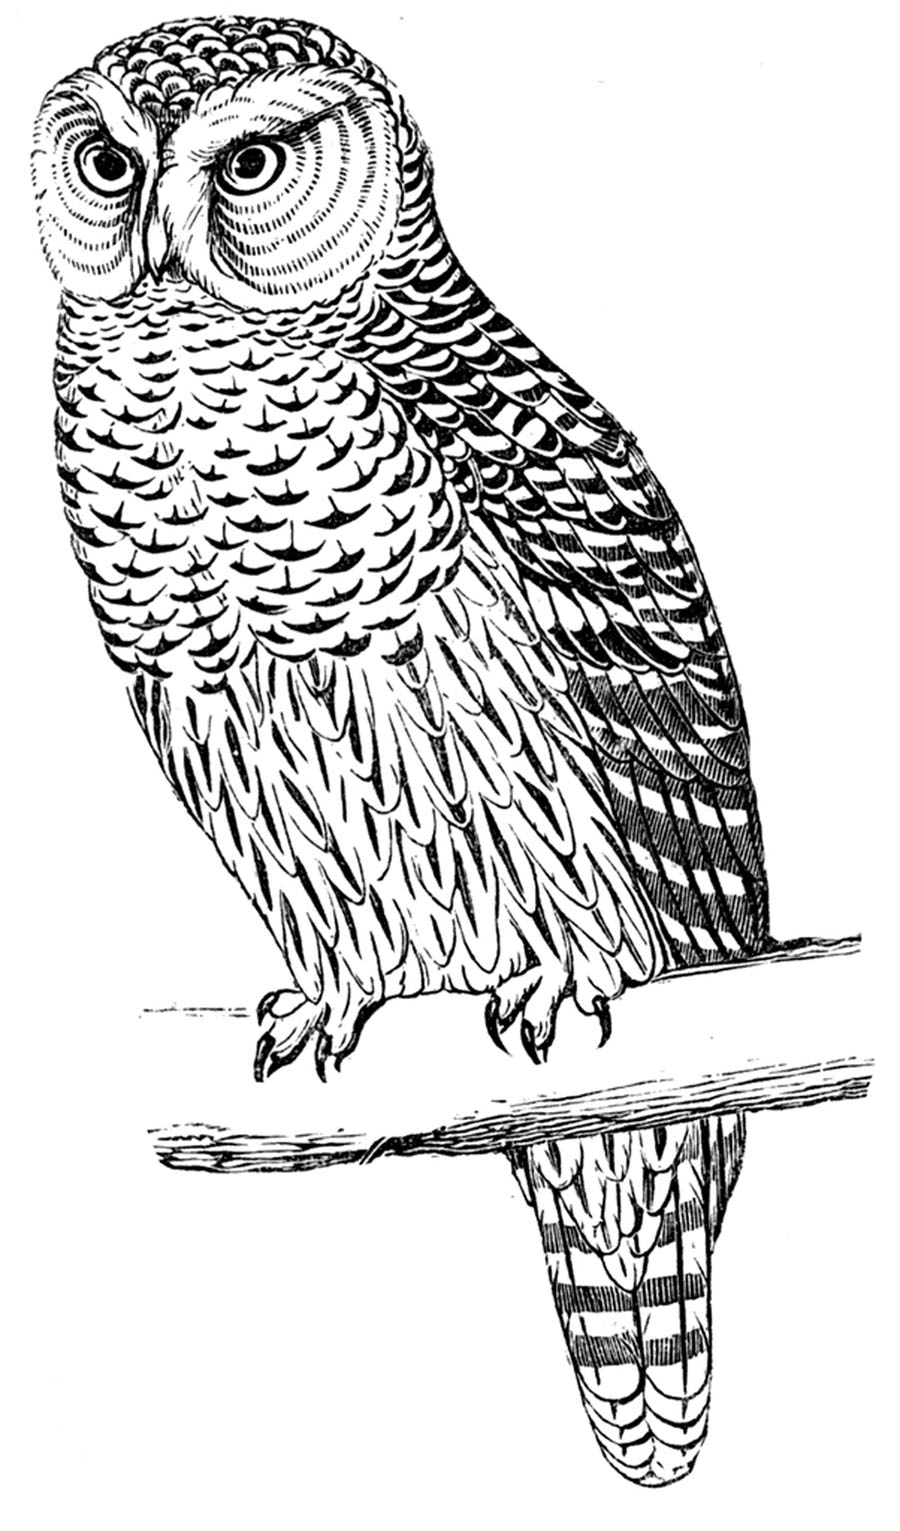 images of owls to color free owl coloring pages of images color to owls